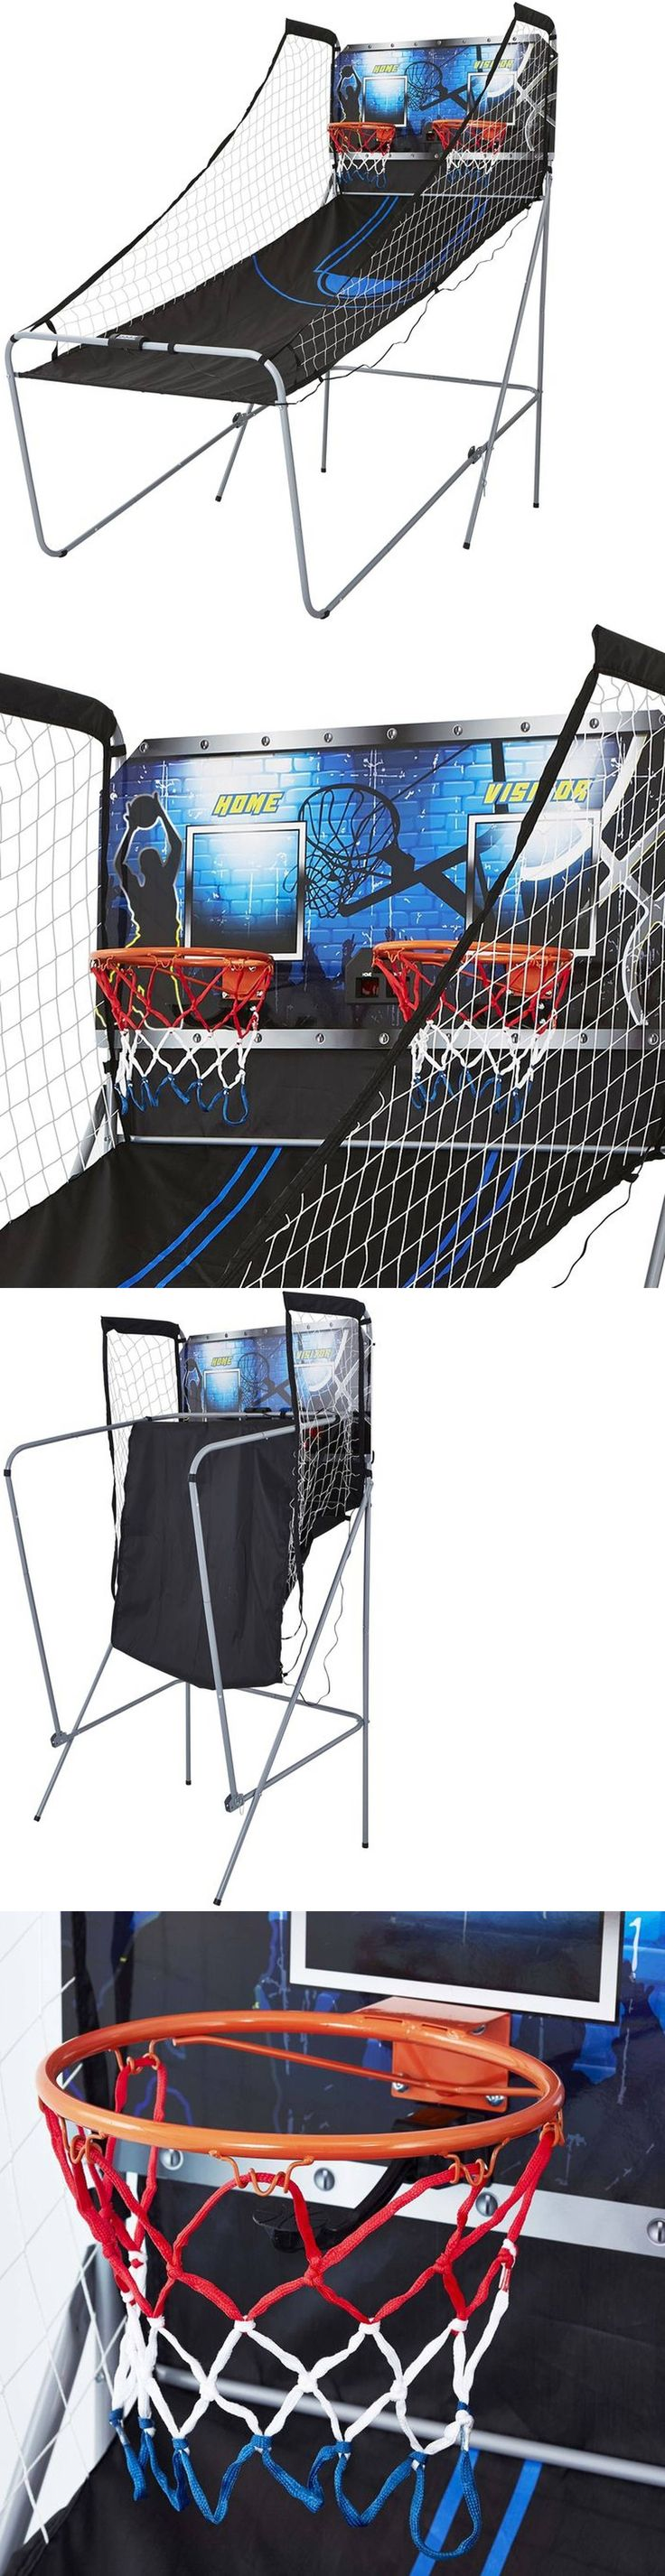 Other Indoor Games 36278: Kids Sports 2 Player Arcade Basketball Game - 8 Game Options -> BUY IT NOW ONLY: $81.49 on eBay!